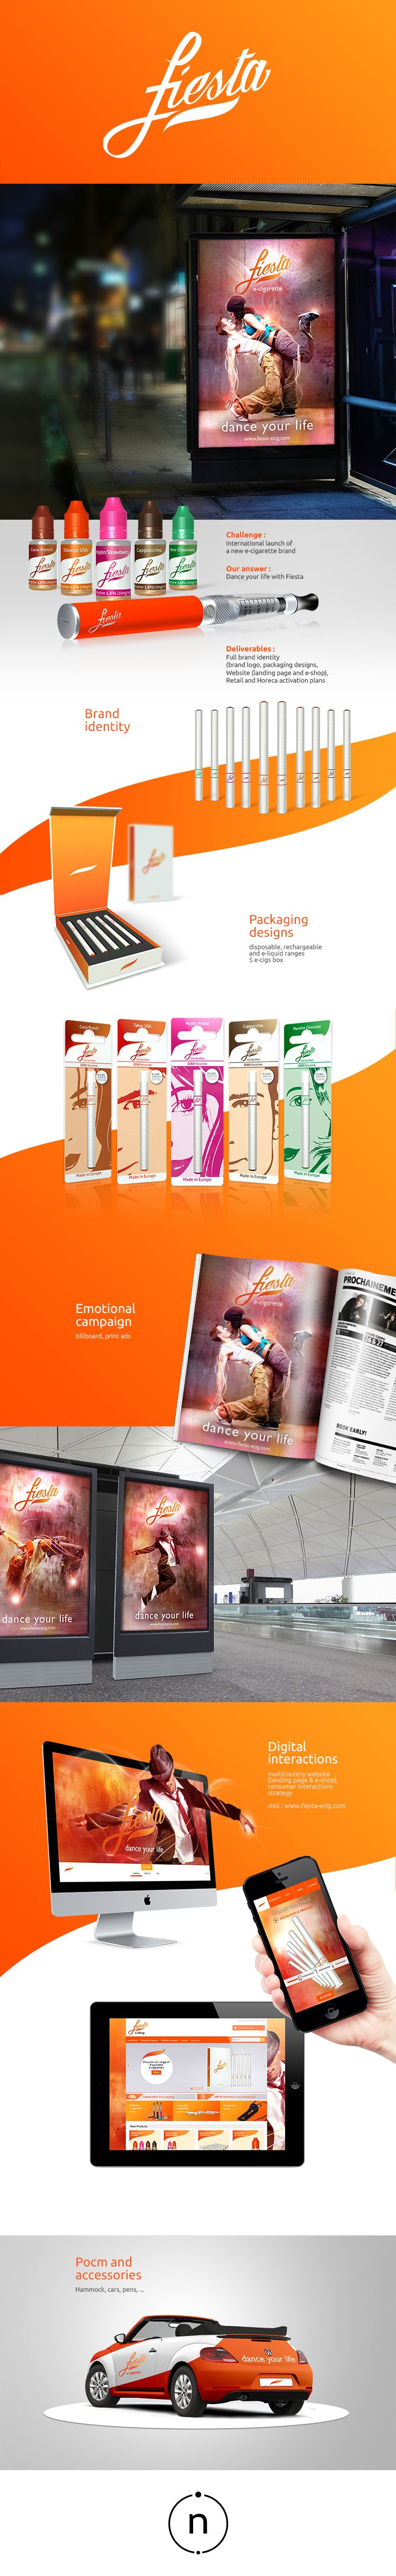 Creation for Fiesta, by Nvision - full brand identity and packaging designs - emotional 'Dance your life' campaign - Digital interactions with a landing page and an e-shop - Visibility items design